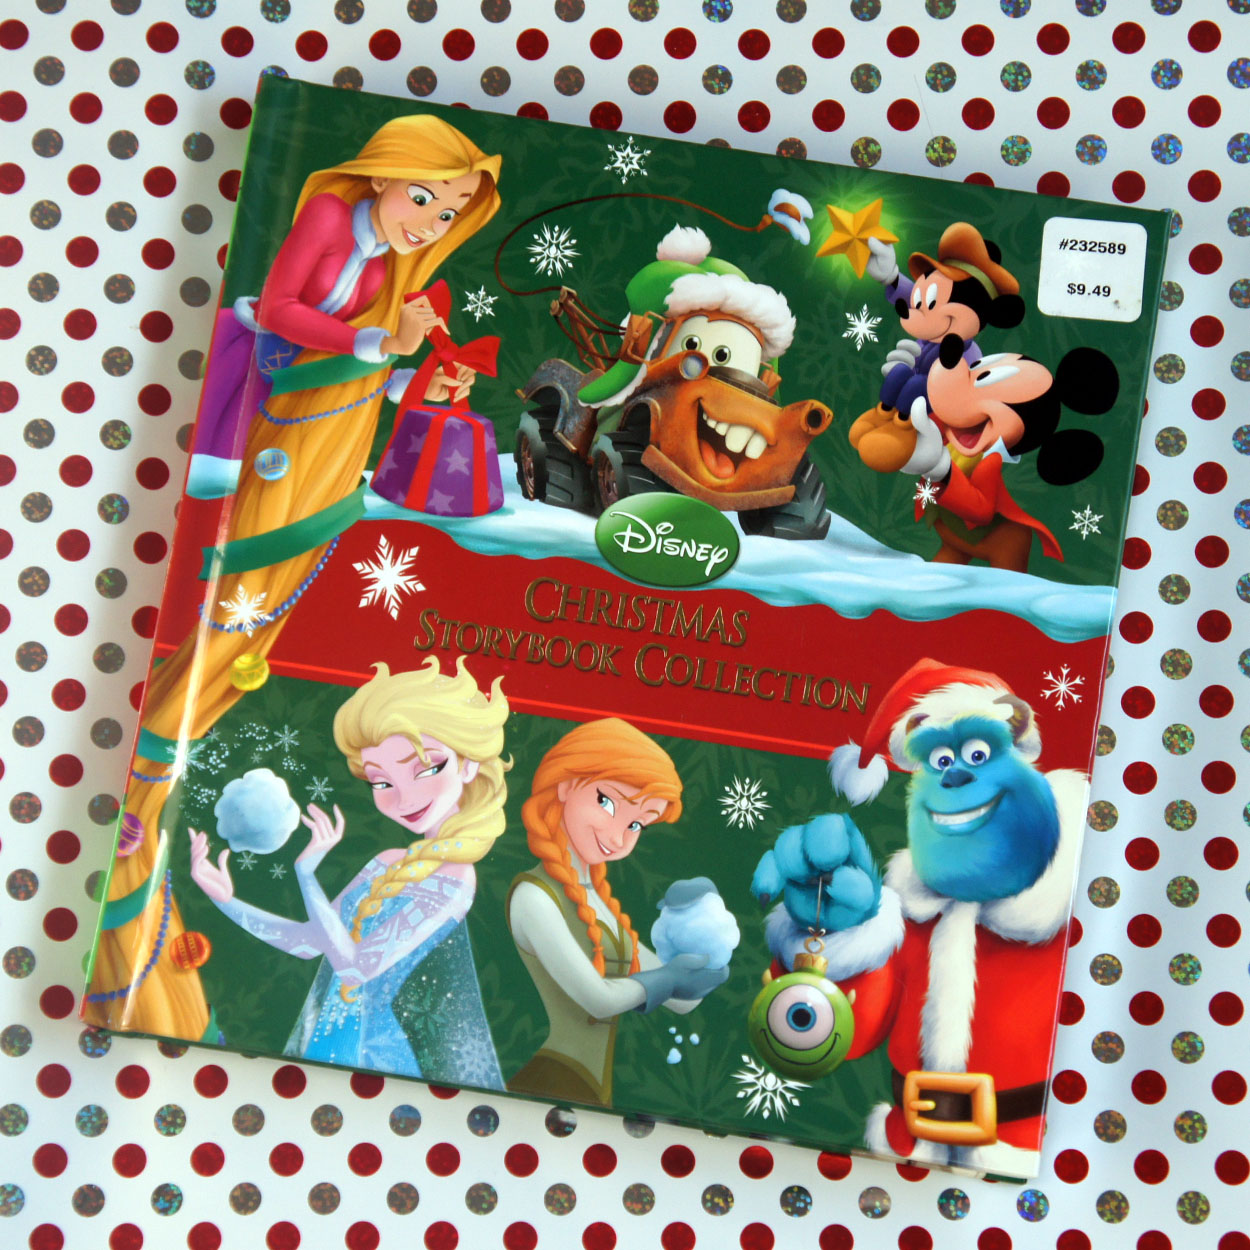 sony dsc - Disney Christmas Storybook Collection